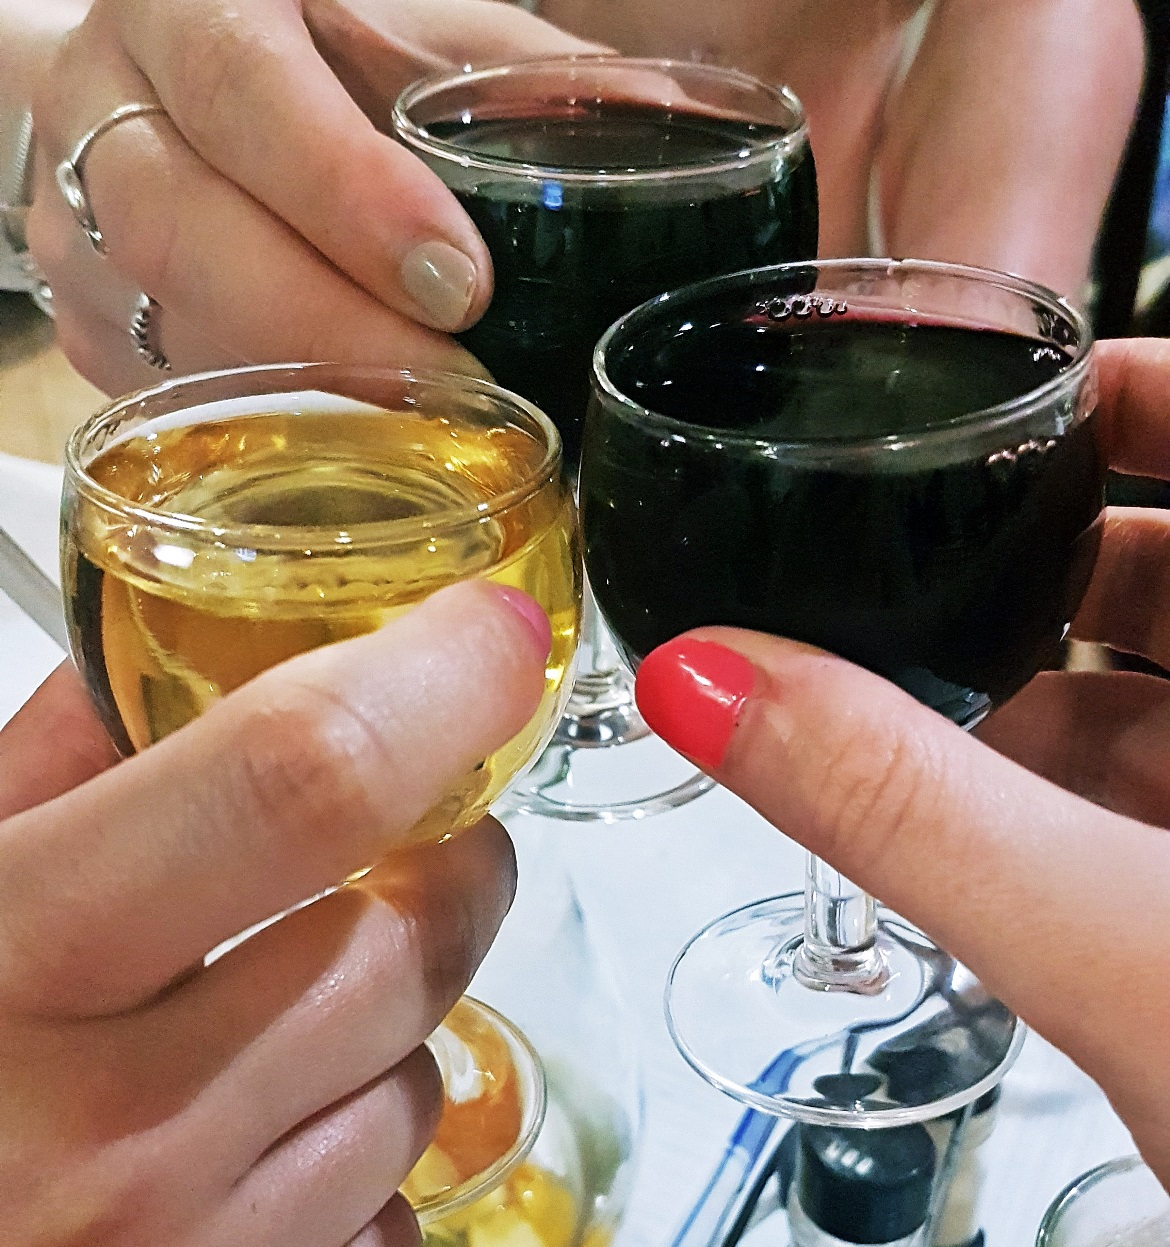 White and red port at Restaurant de Calçada - Food and Drink in Lisbon, review by BeckyBecky Blogs